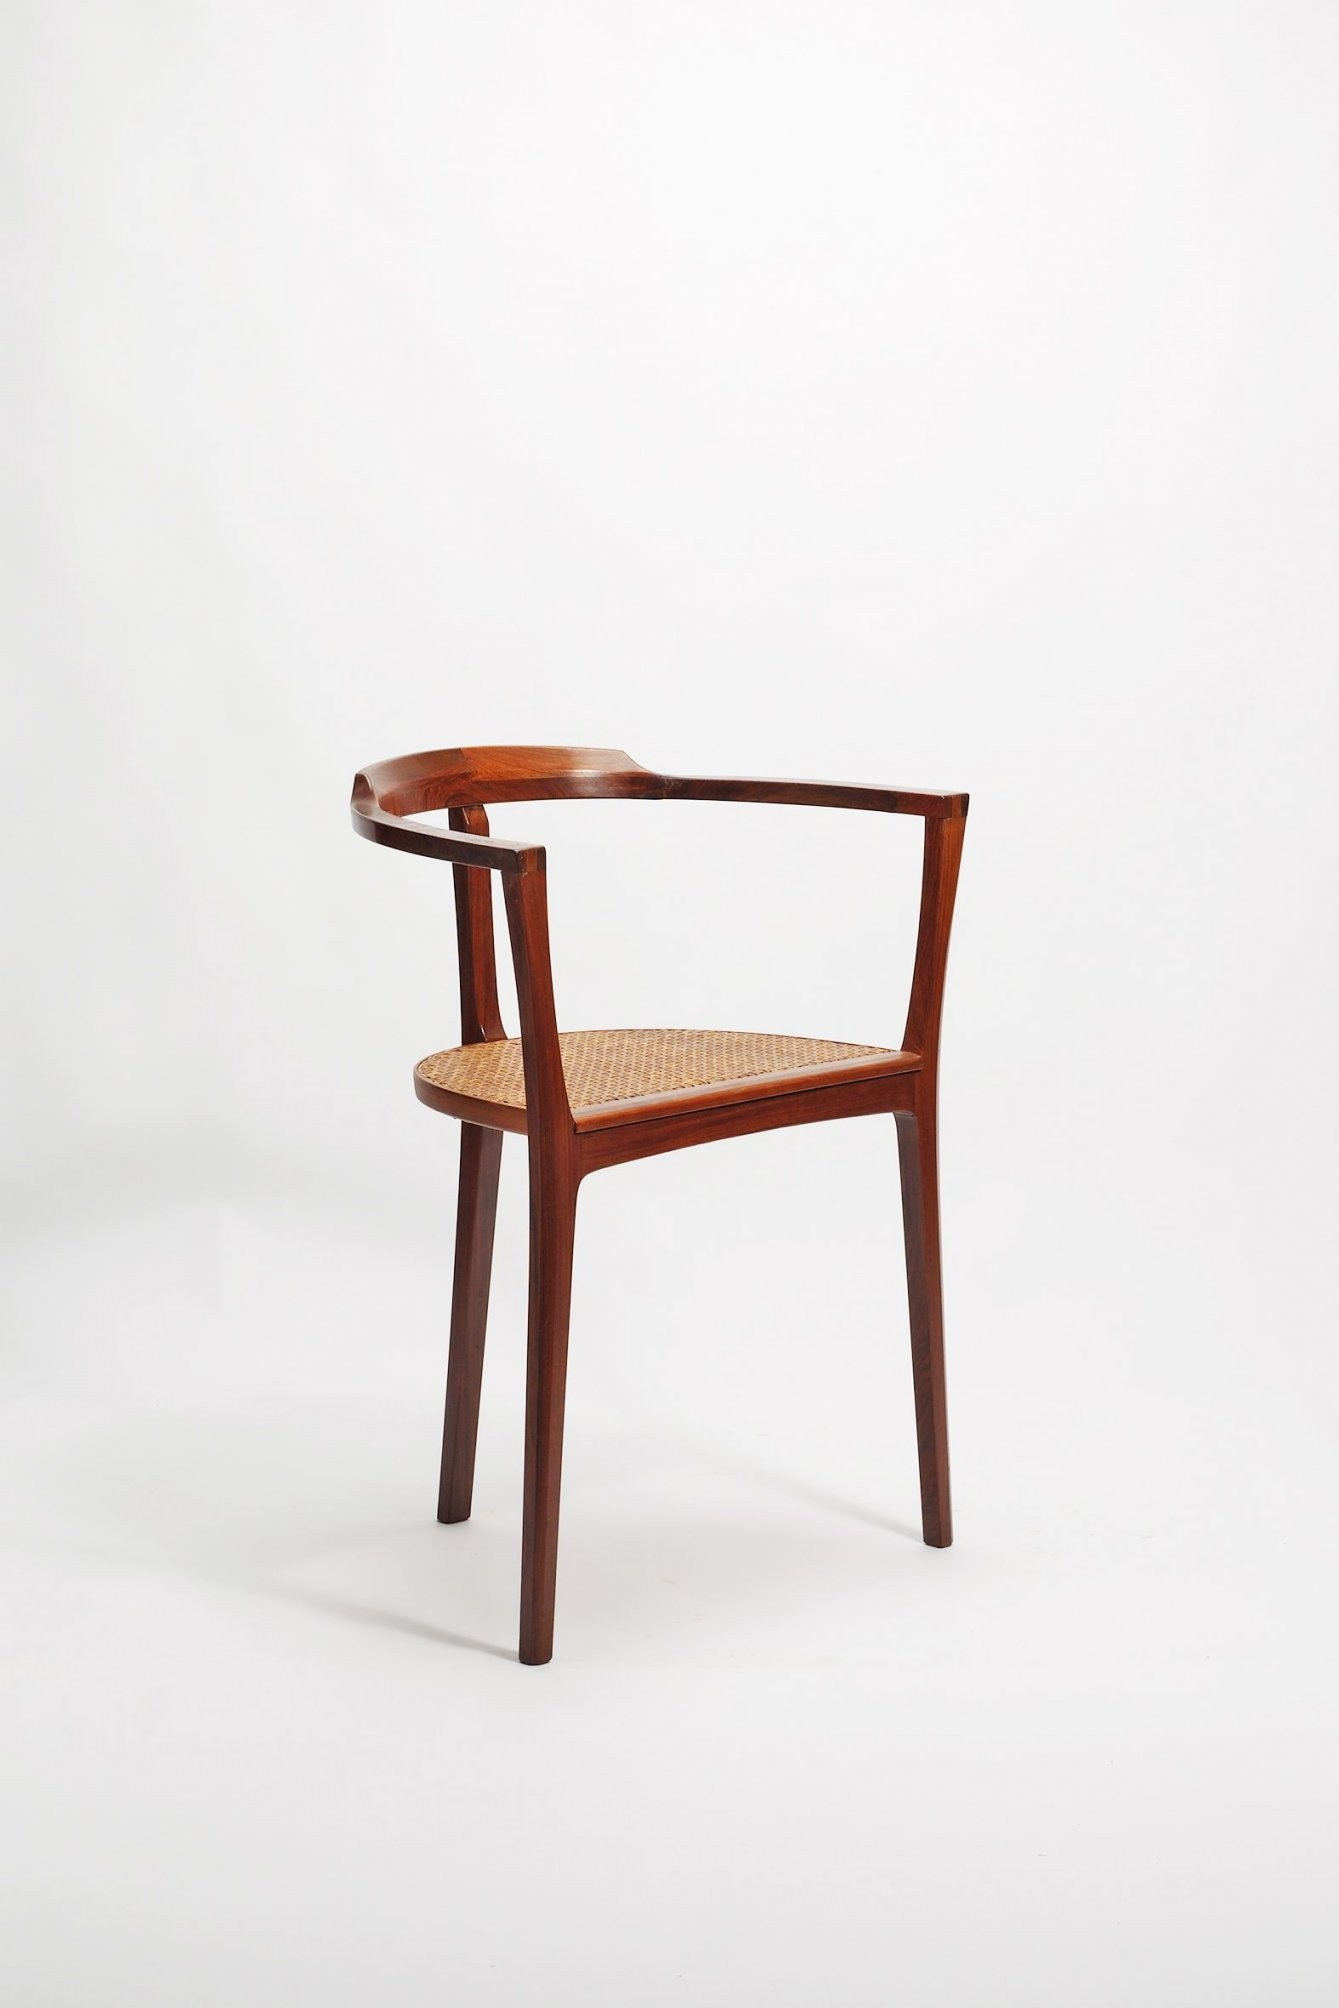 Xaver Seemüller; Wood And Cane Armchair 1965  E S E R I von Stühle Modernes Design Photo